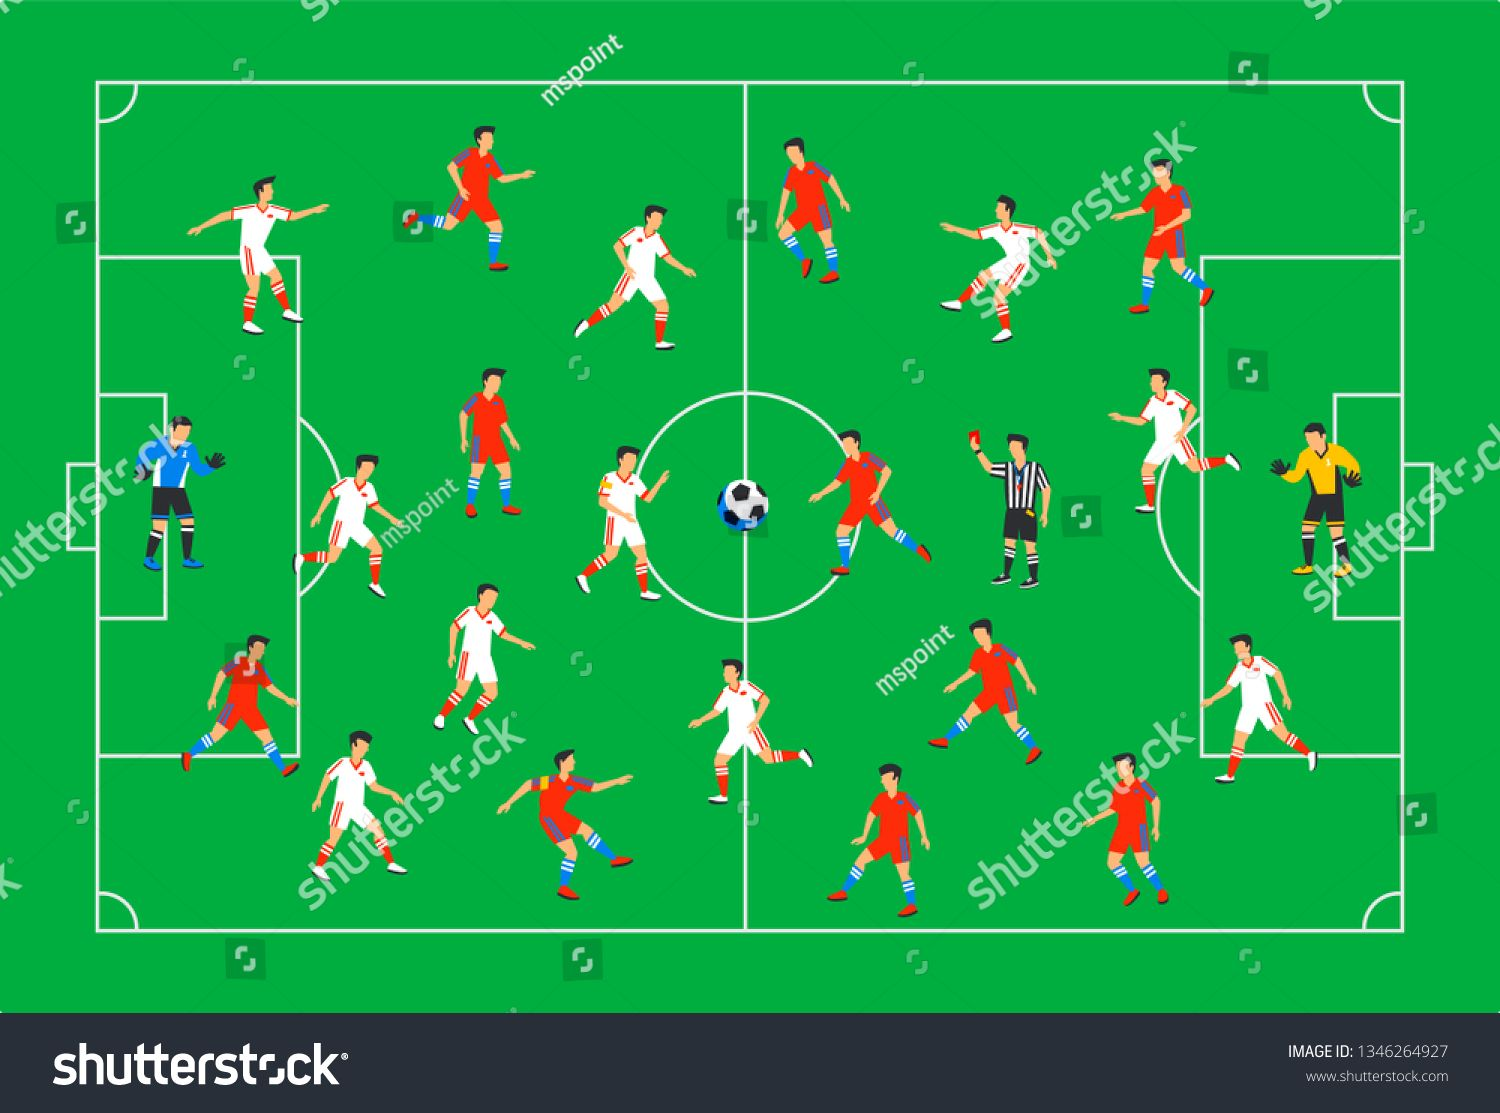 Football Players On A Green Field Soccer Players On Different Positions Playing Football On A Sta Playing Football Presentation Design Template Soccer Players